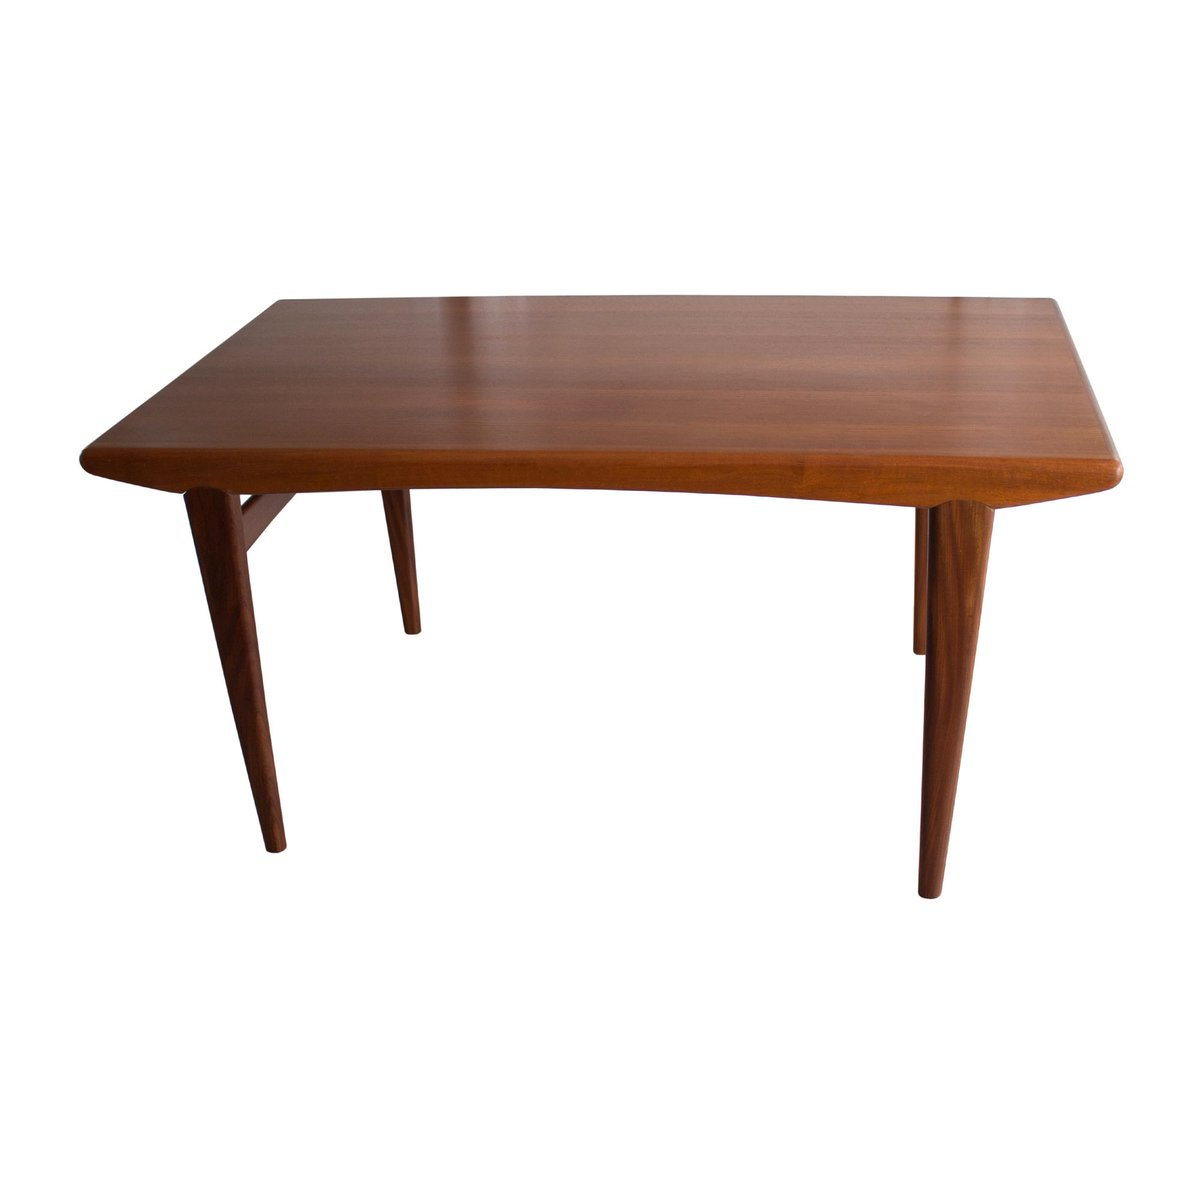 Extendable Teak Dining Table 1960s for sale at Pamono : extendable teak dining table 1960s 3 from www.pamono.com size 1200 x 1200 jpeg 30kB